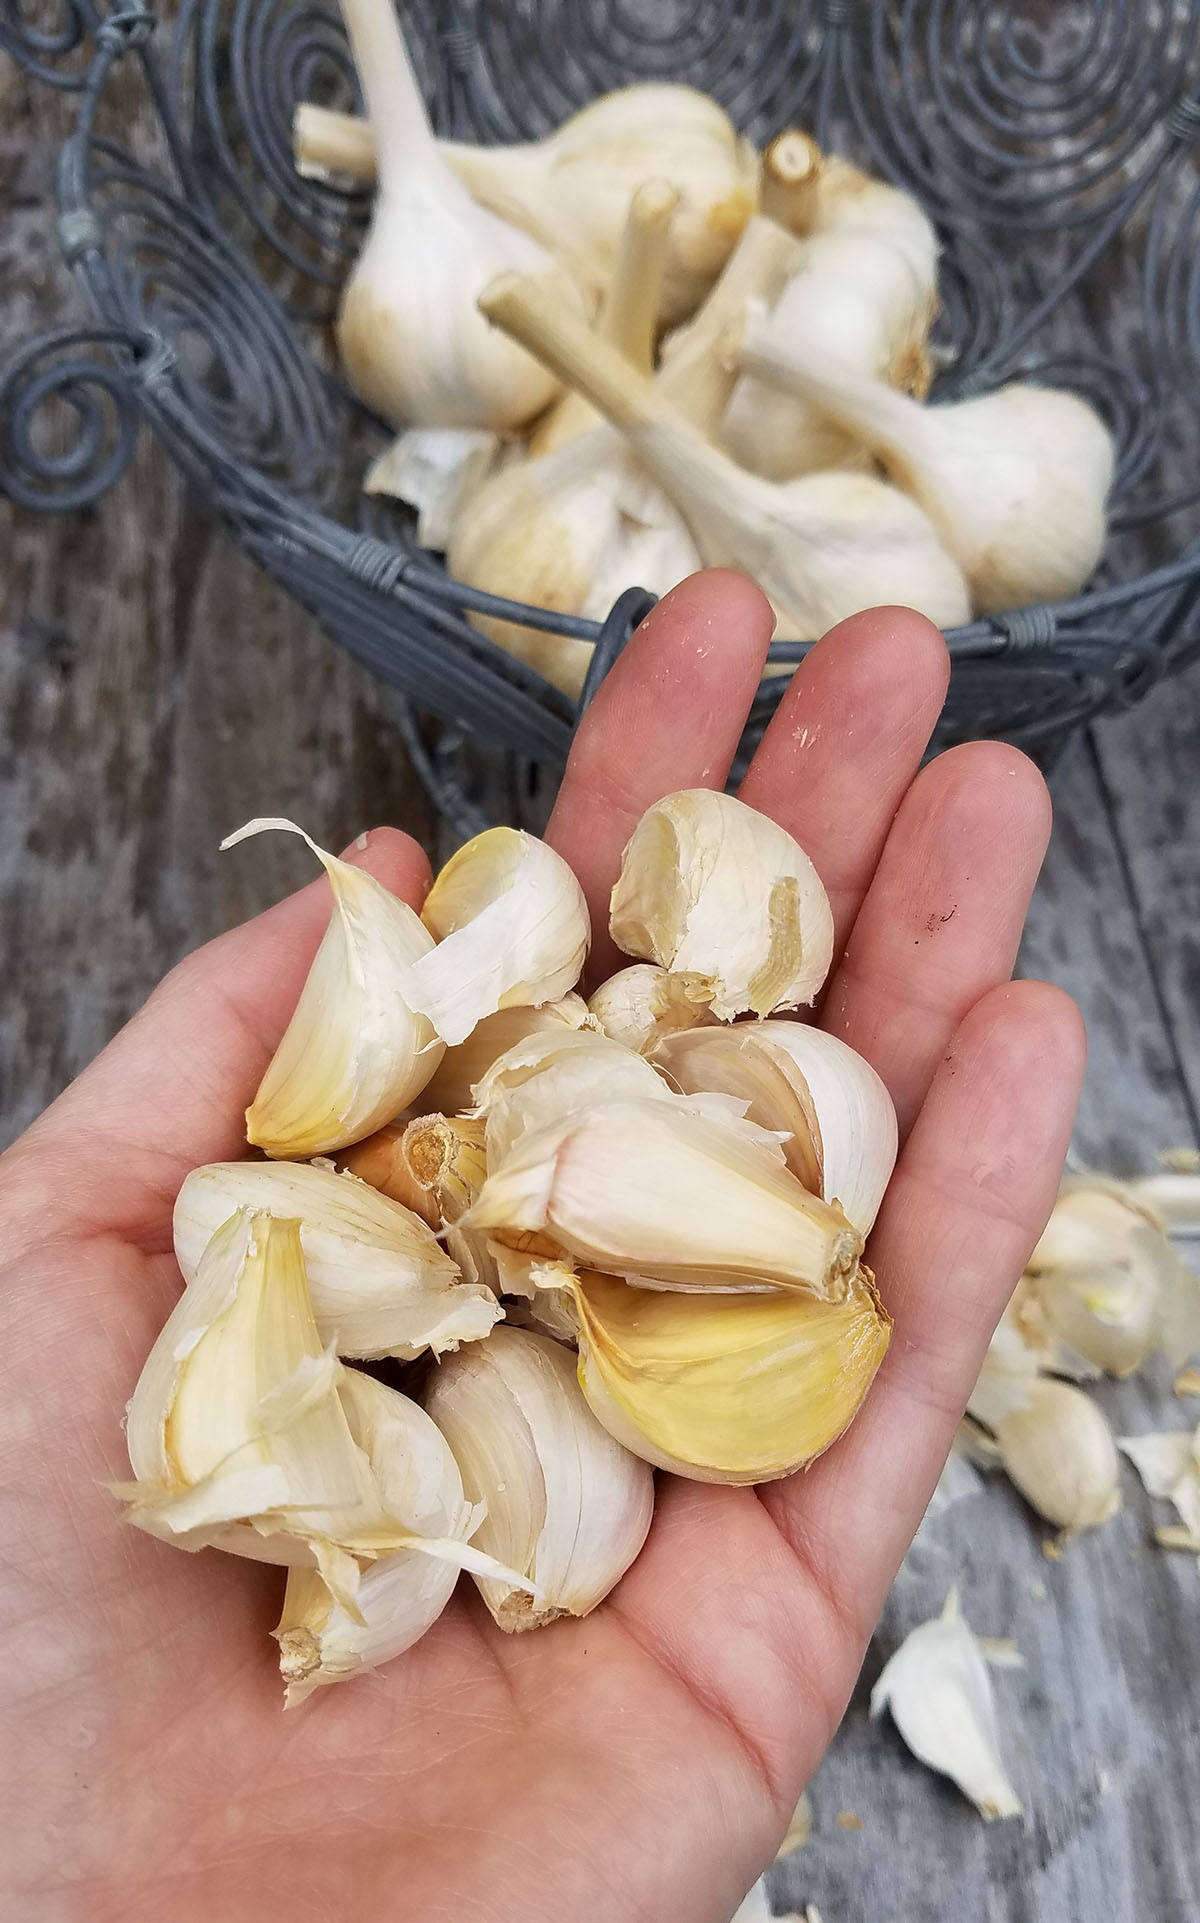 To plant garlic, crack the head to separate the cloves. Leave the papery skins on. Hardneck garlic cloves tend to be large, but discard any very small cloves (keep them for eating or pickling).